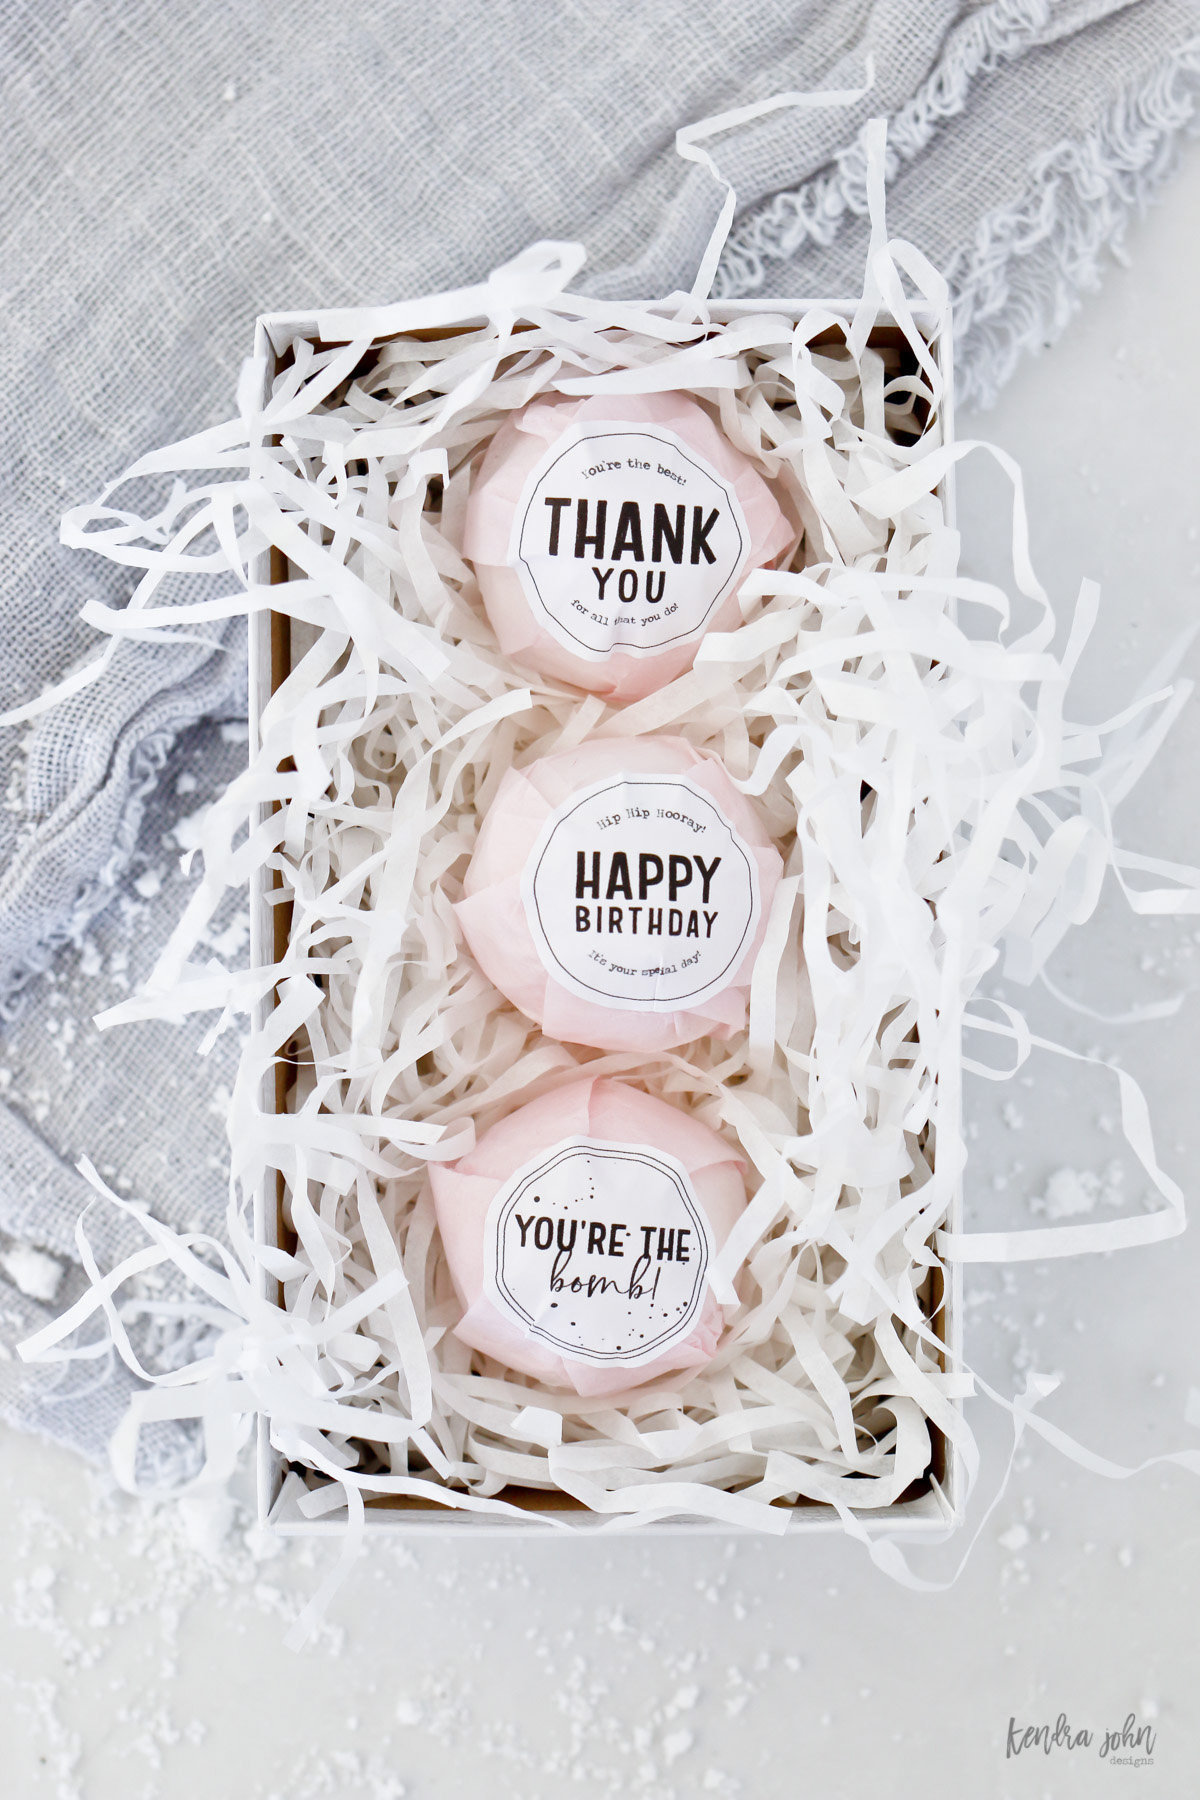 bath bombs in a box with gift tags for thank you, happy birthday, and you're the bomb